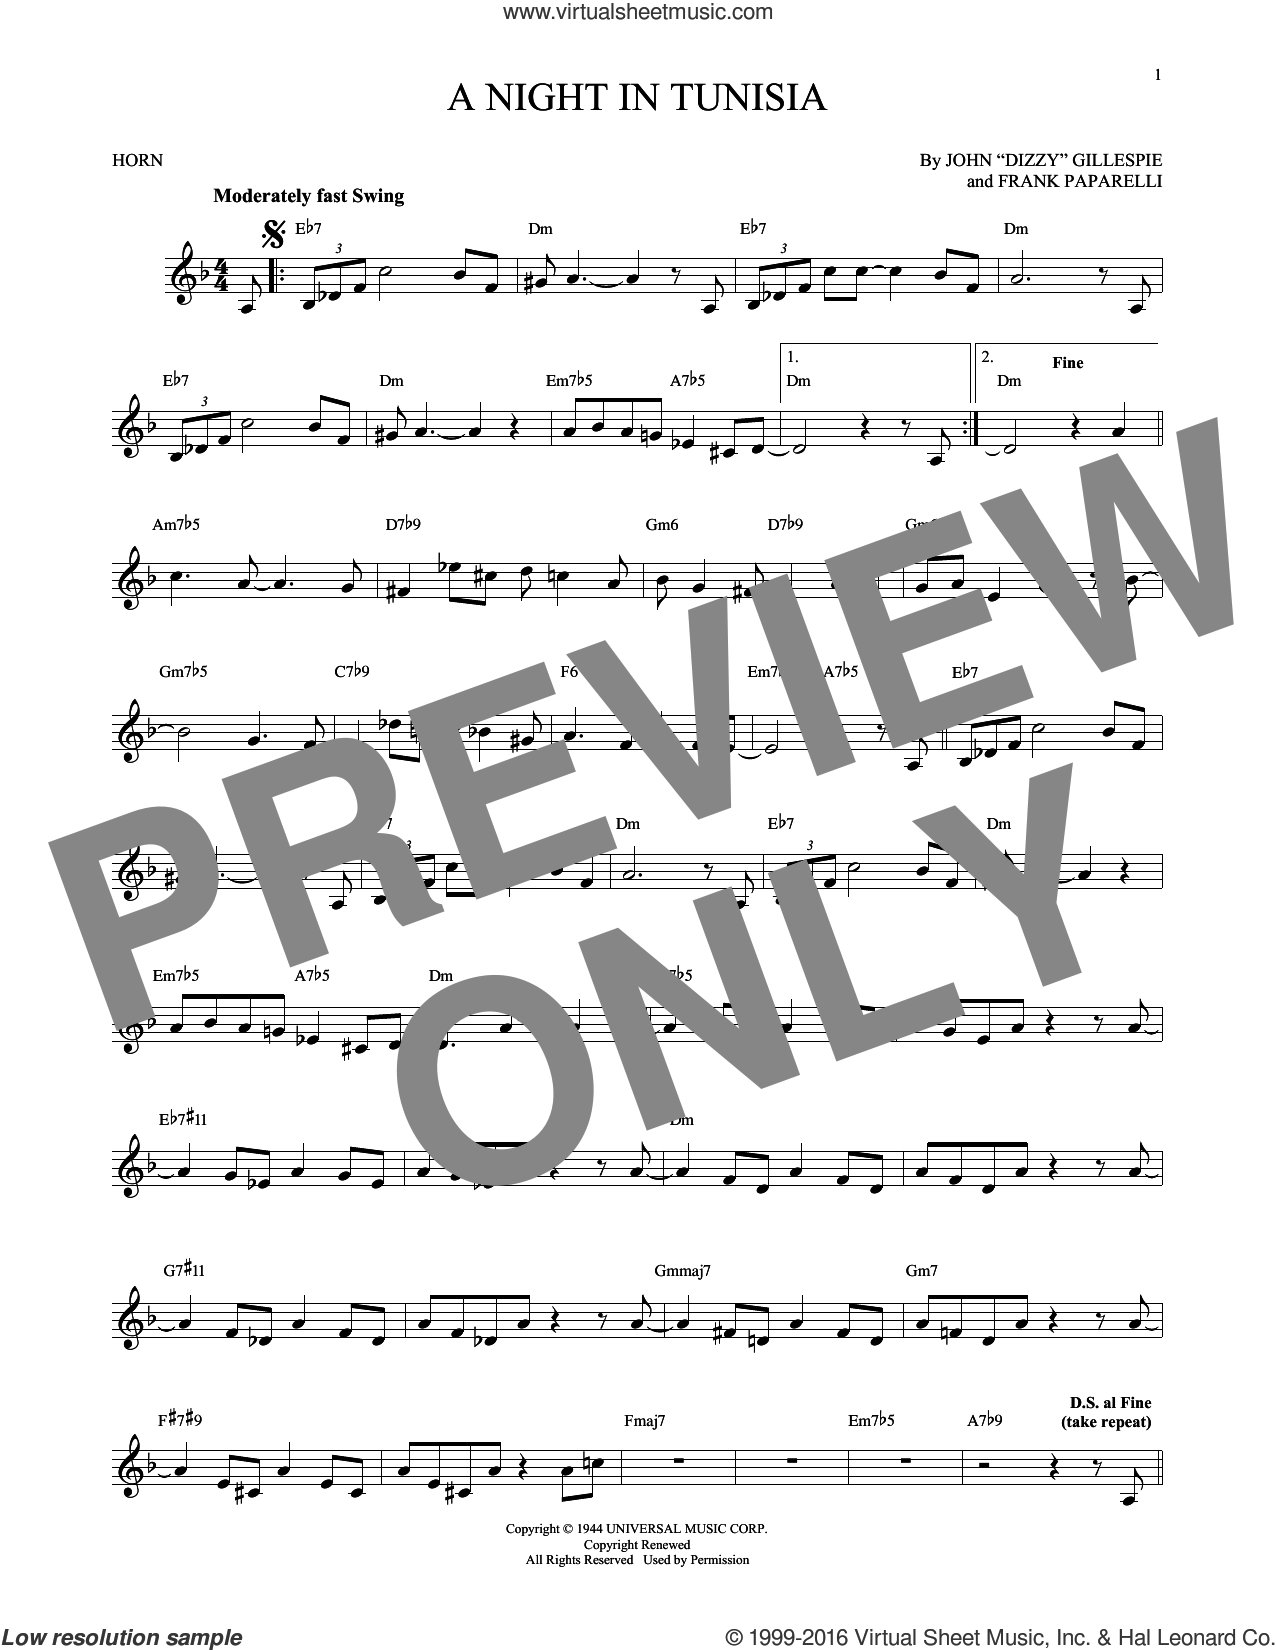 A Night In Tunisia sheet music for horn solo by Dizzy Gillespie and Frank Paparelli, intermediate skill level